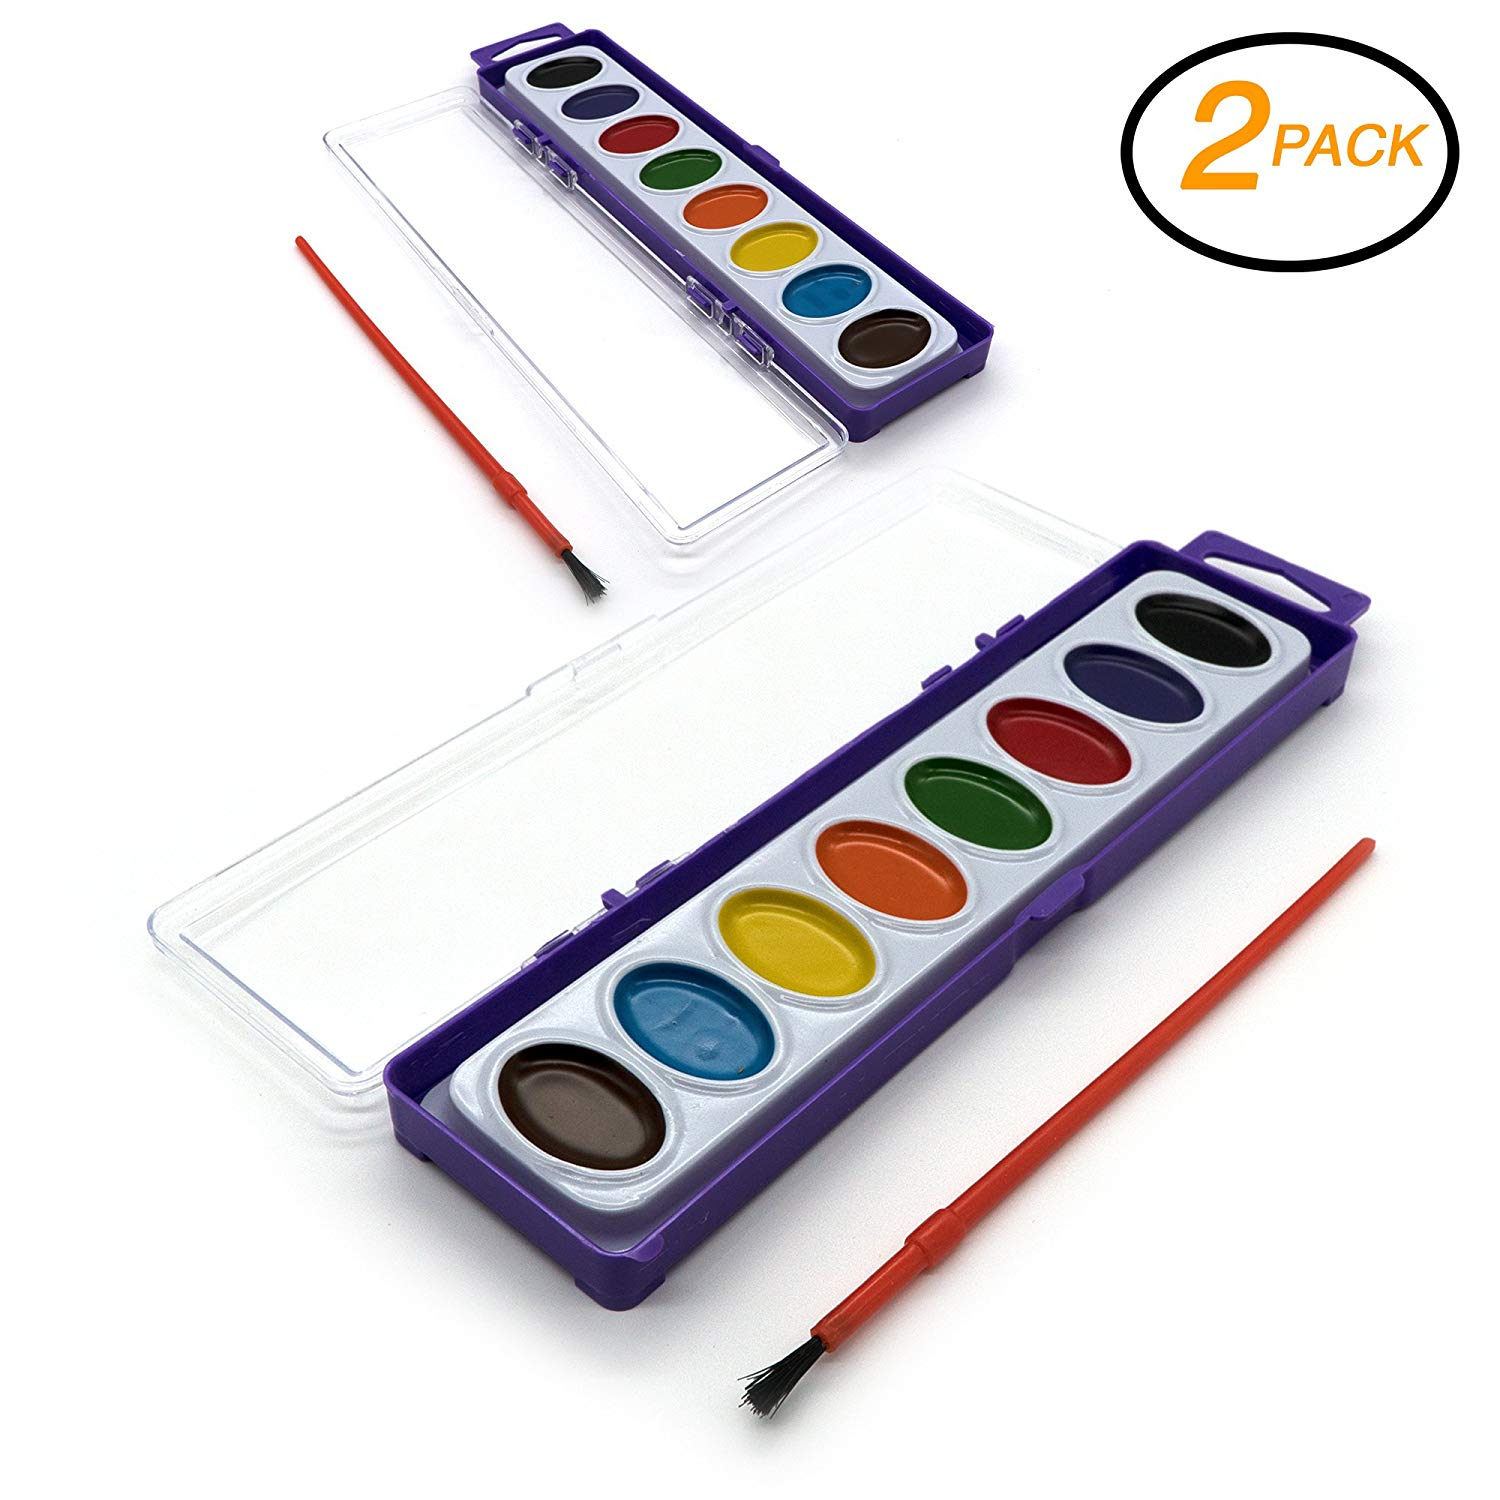 Emraw Assorted 8 Ct Color Washable Paint Easy Take-Off Semi Moist Watercolors with Brush Art Craft Tool - for School & Home (Pack of 2)